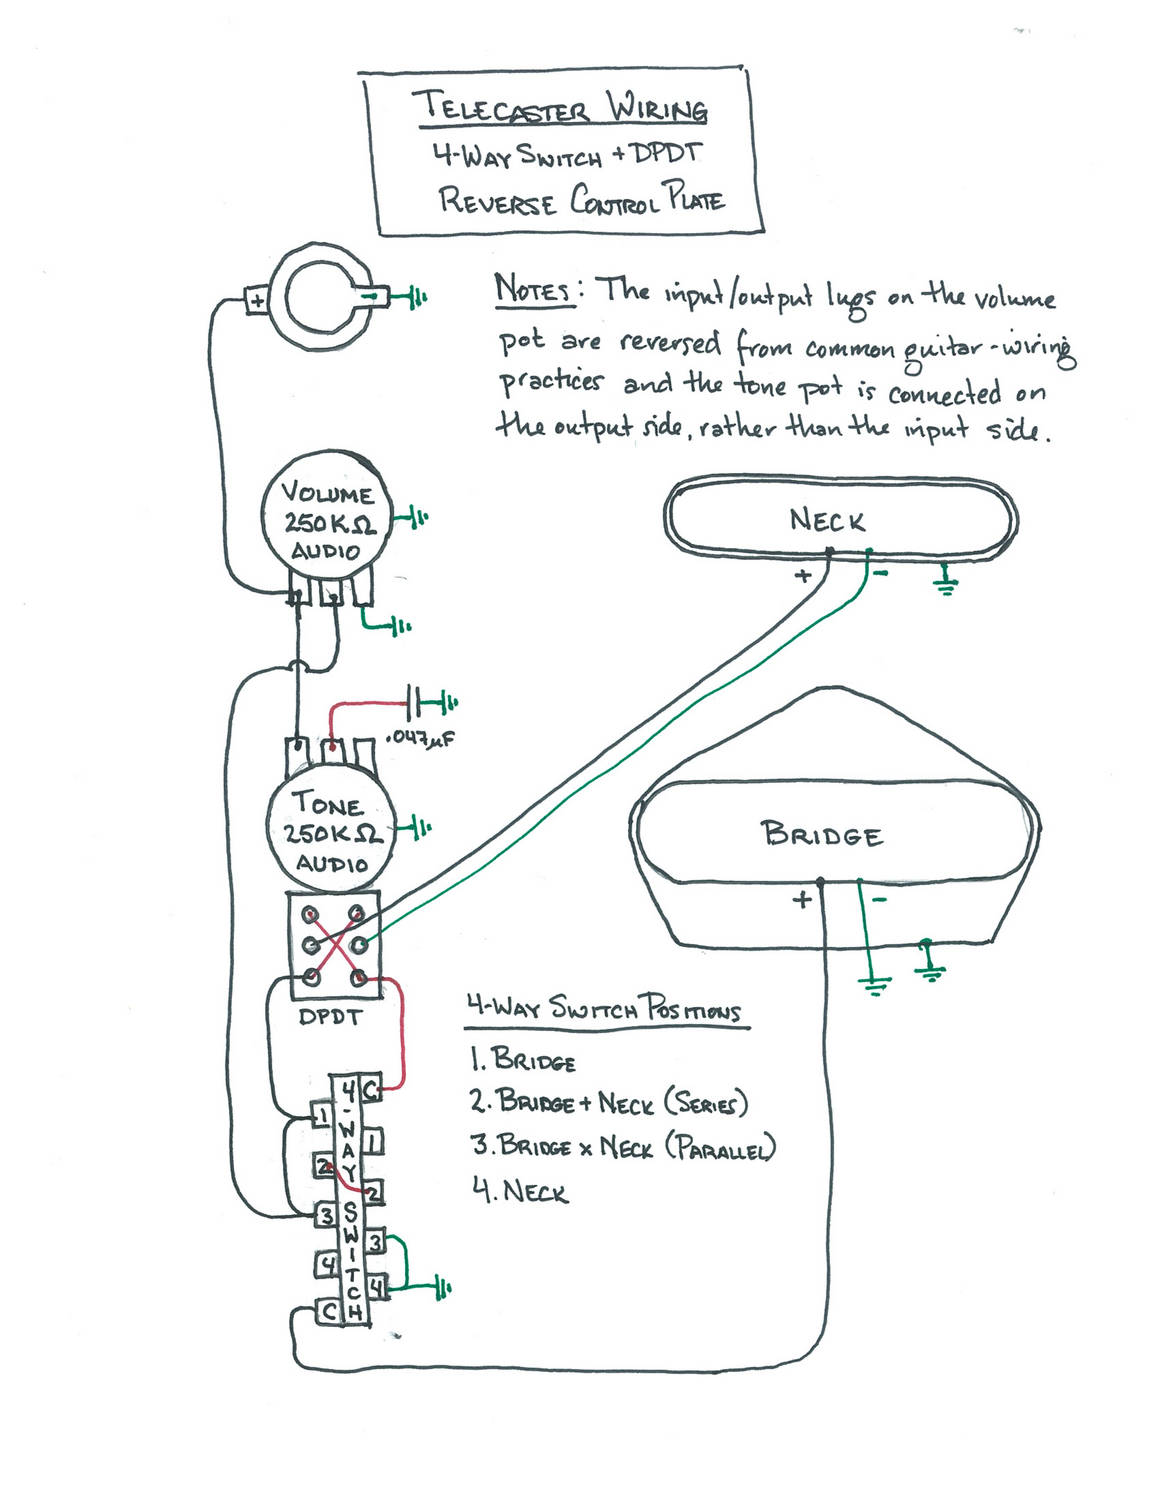 Wiring Diagram: Tele 4-way switch with DPDT - reverse control plate